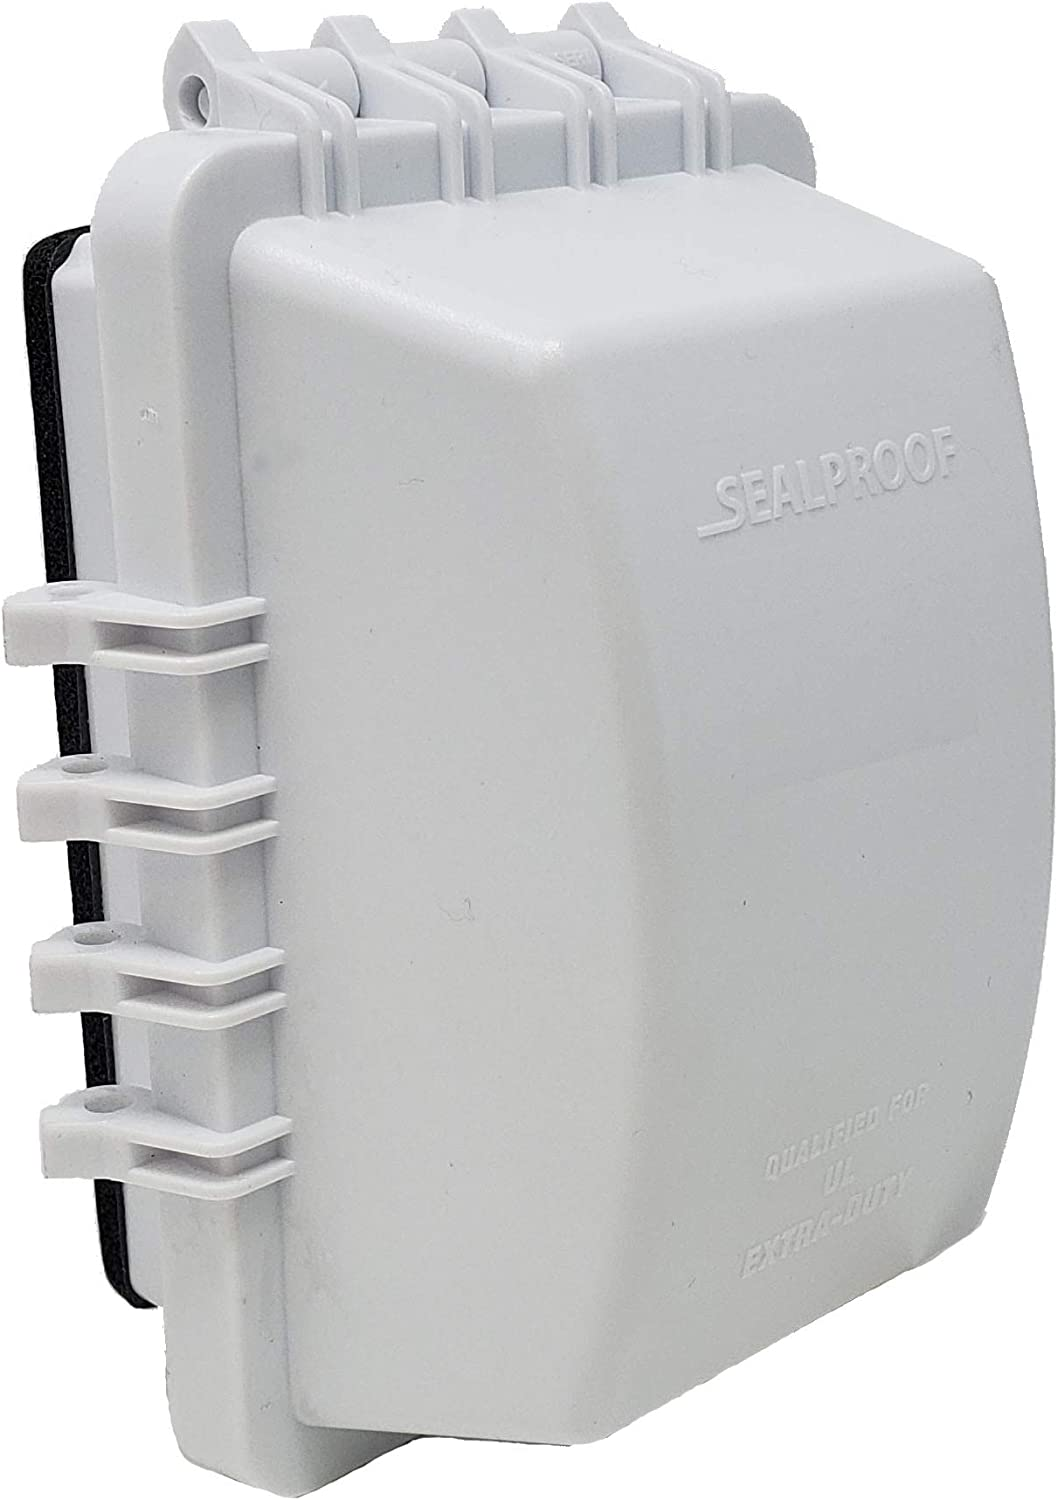 Two Gang Outdoor Plug and Receptacle Protector Lockable 45 Configurations UL Extra Duty Compliant Sealproof 2-Gang Weatherproof in Use Outlet Cover